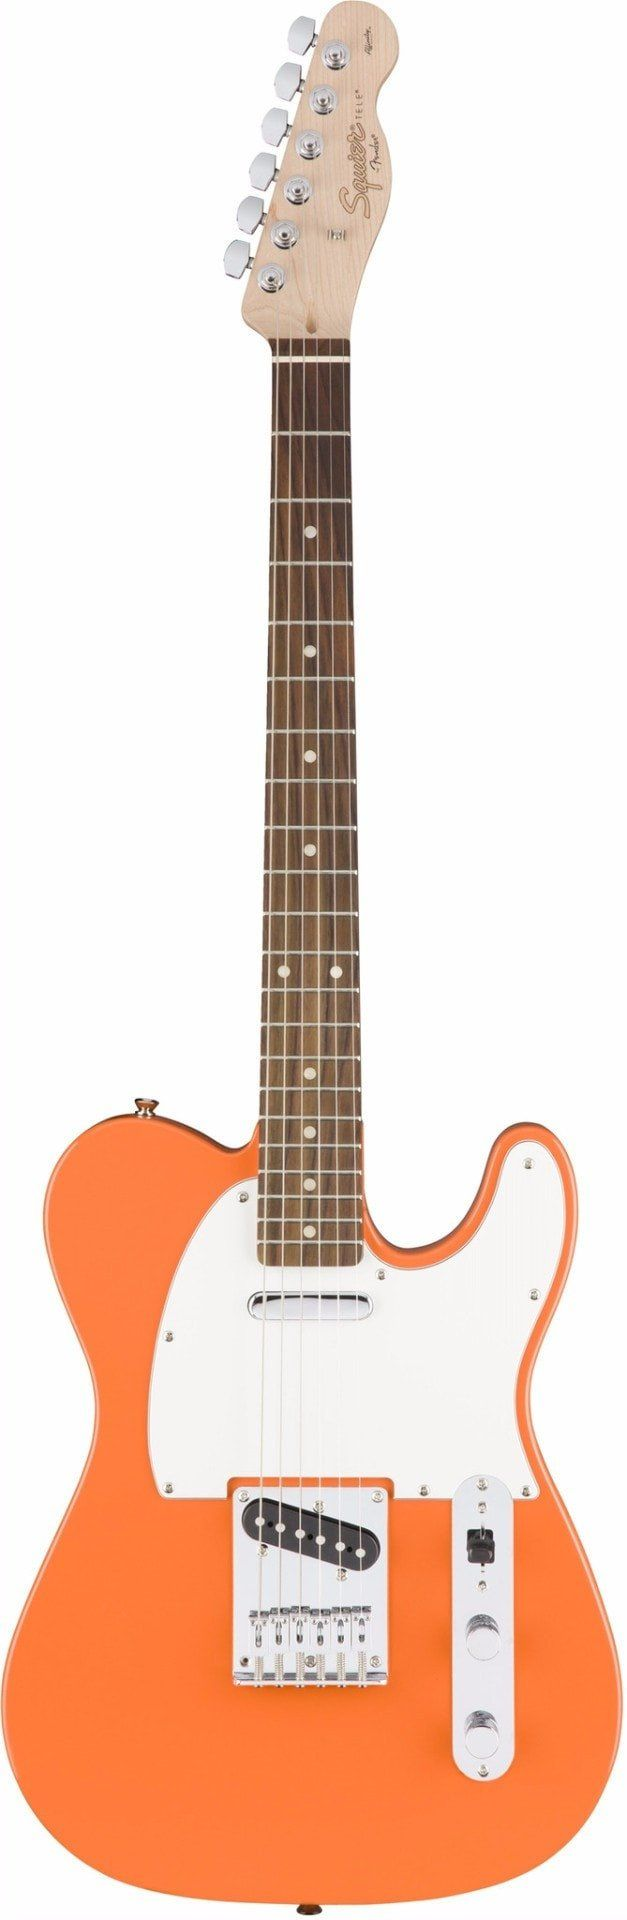 medium resolution of a5c6ae423ce1618731e09317b9017974 the 25 best telecaster body ideas on pinterest fender squier squier affinity squier affinity telecaster wiring diagram